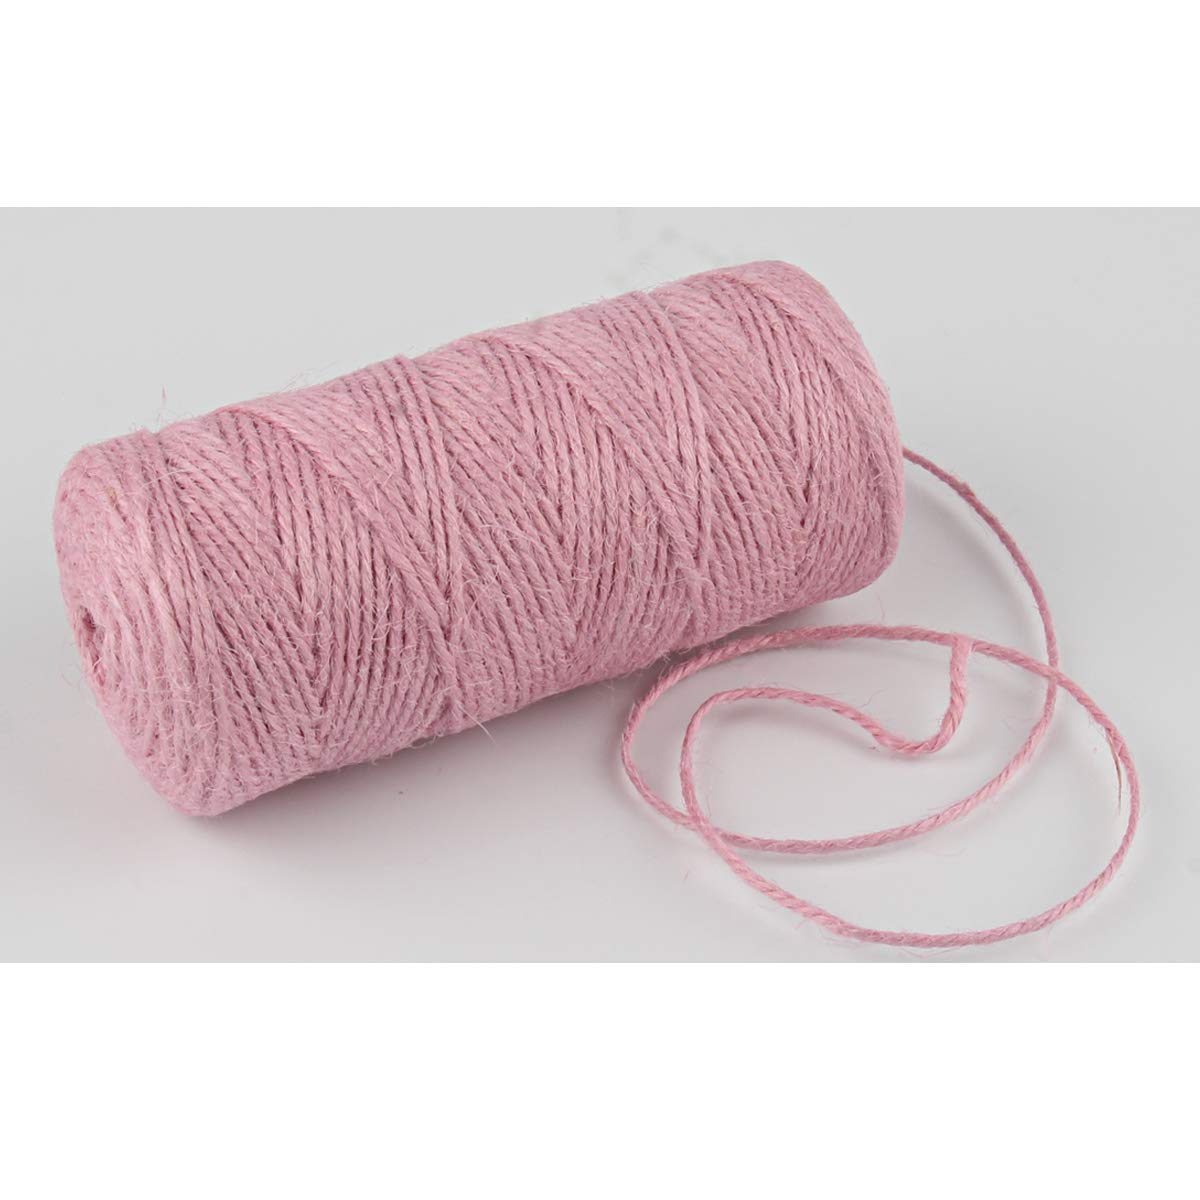 Pink Jute Twine,328 Feet Jute Twine 2mm Colored Jute String Cord for DIY Arts Crafts Gifts Decoration